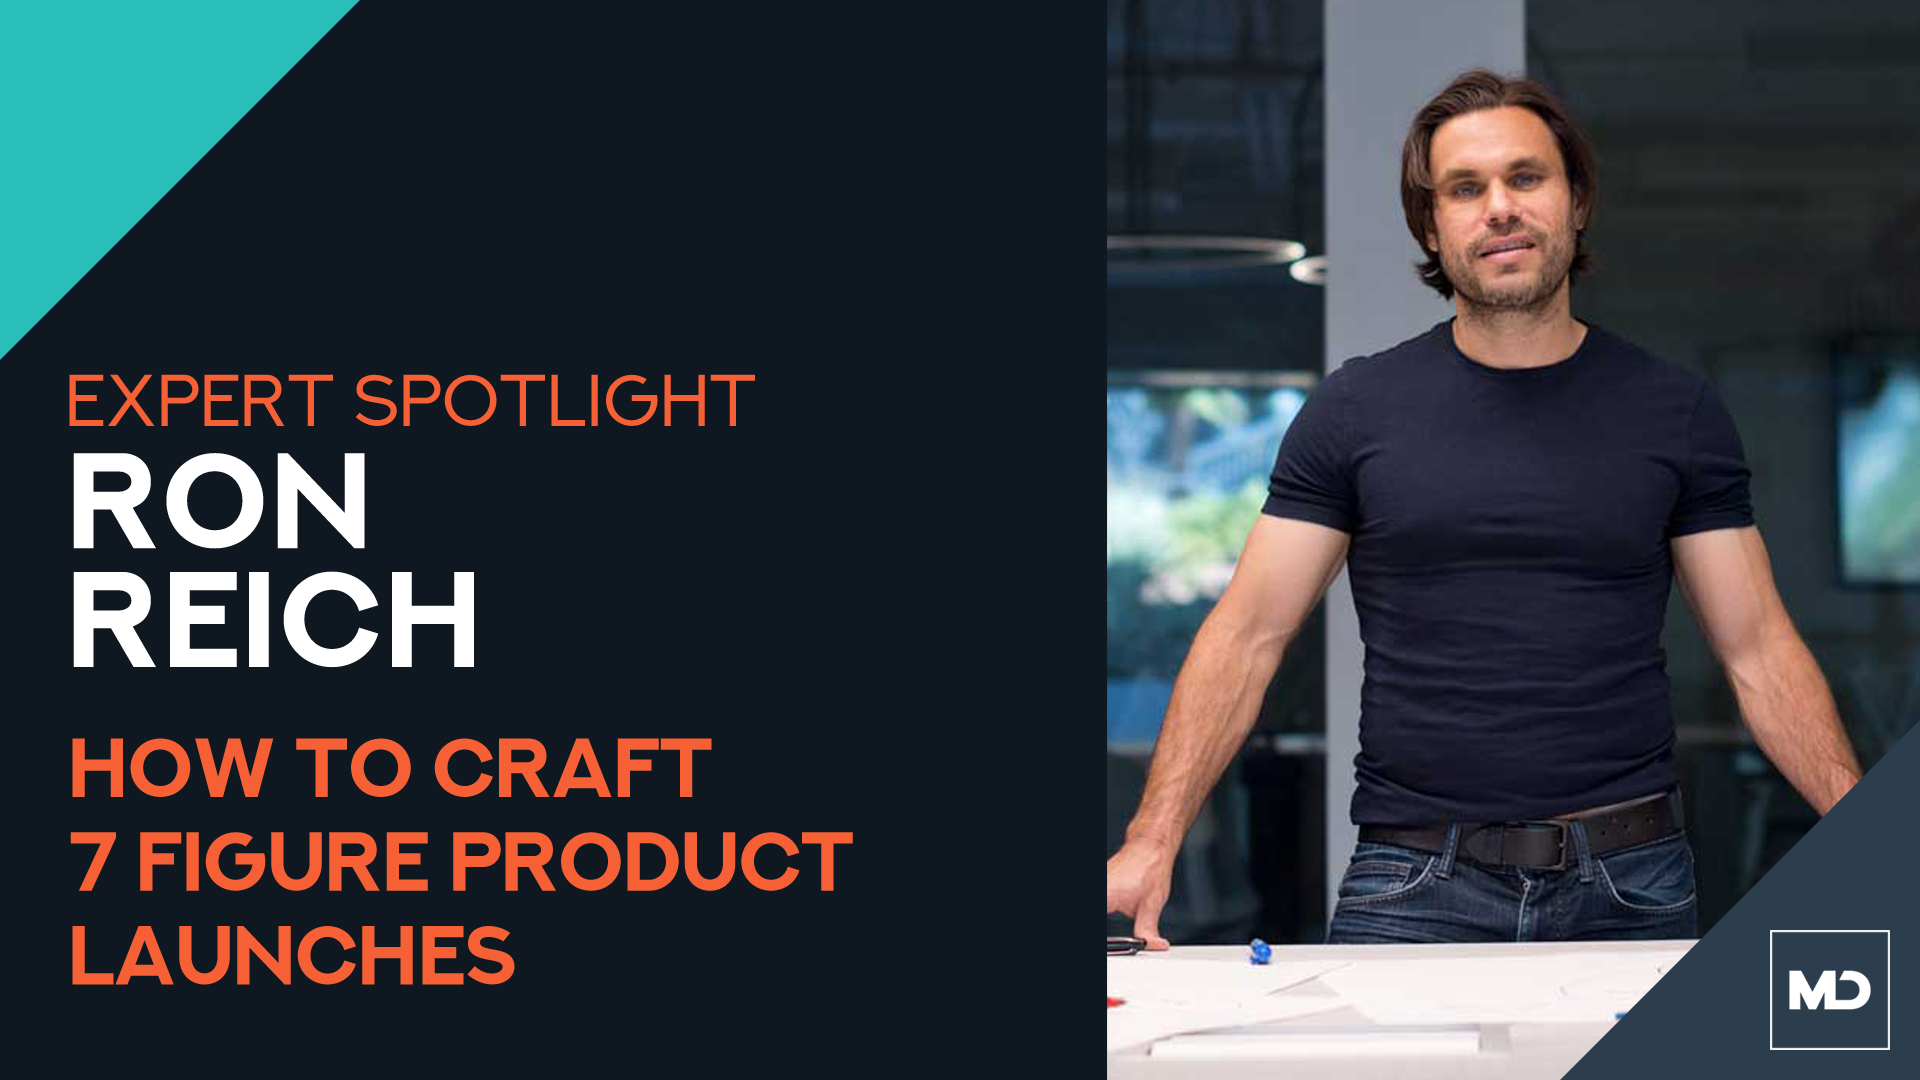 Ron Reich - Crafting 6 Figure Product Launches